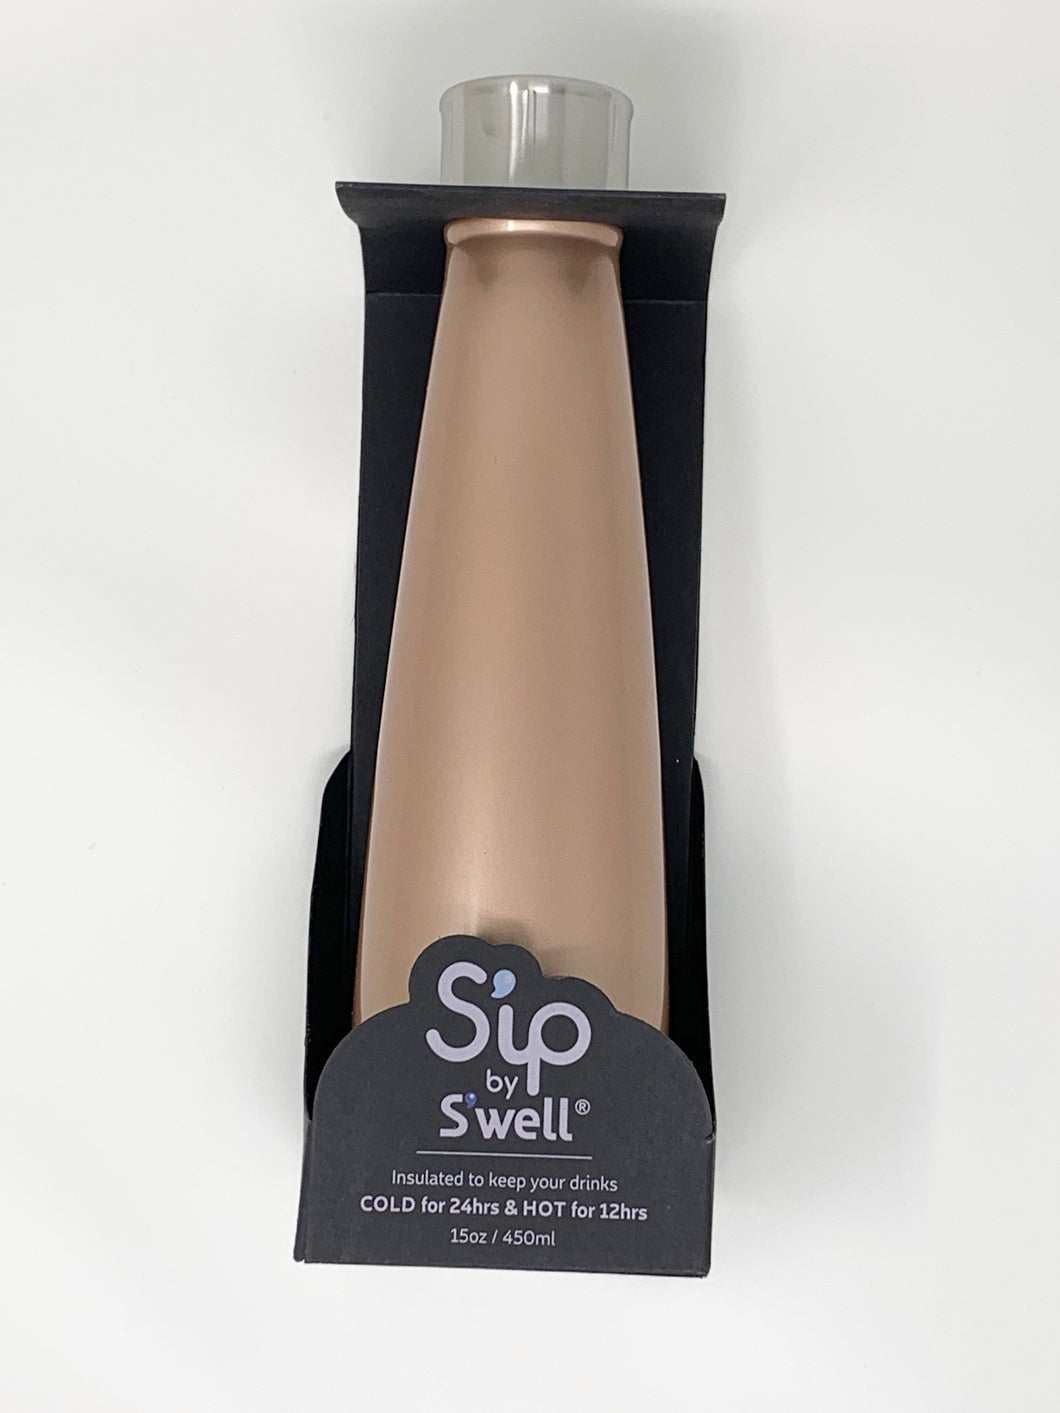 S'ip by S'well 15oz Water Bottle - Golden Rose